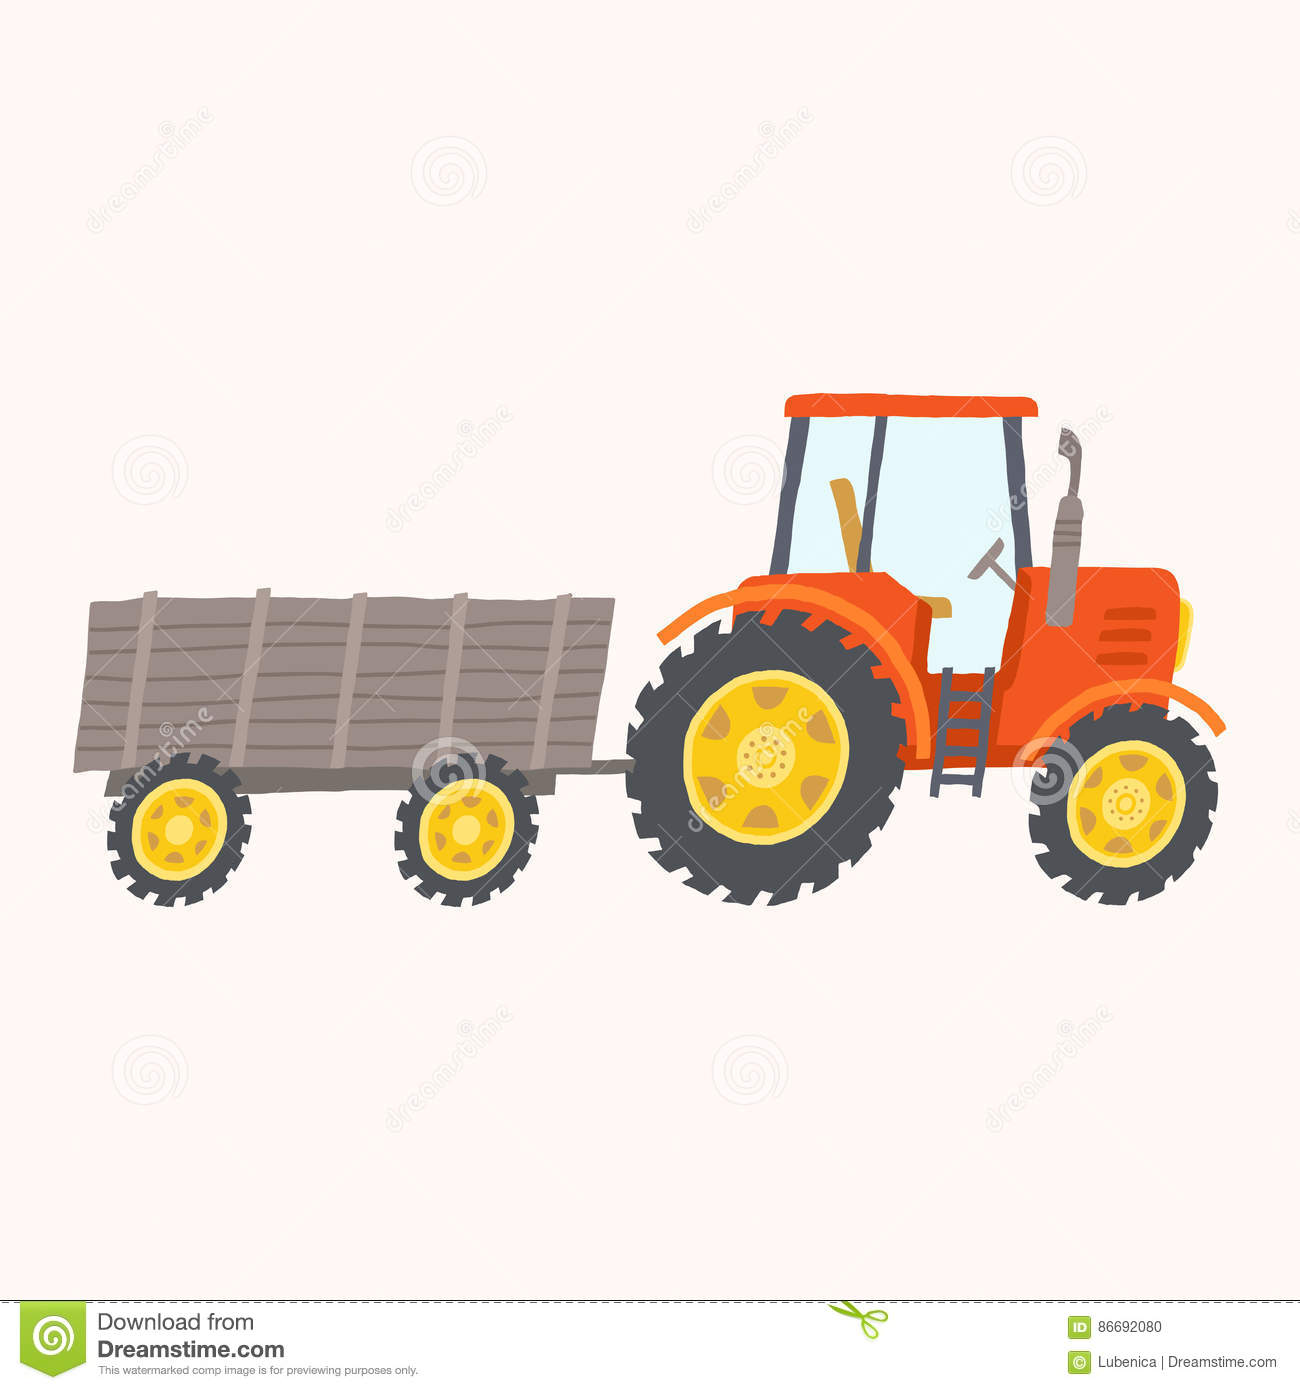 Up The Tractor Green Tractor With Bucket Cartoon : Red tractor with trailer toy stock vector